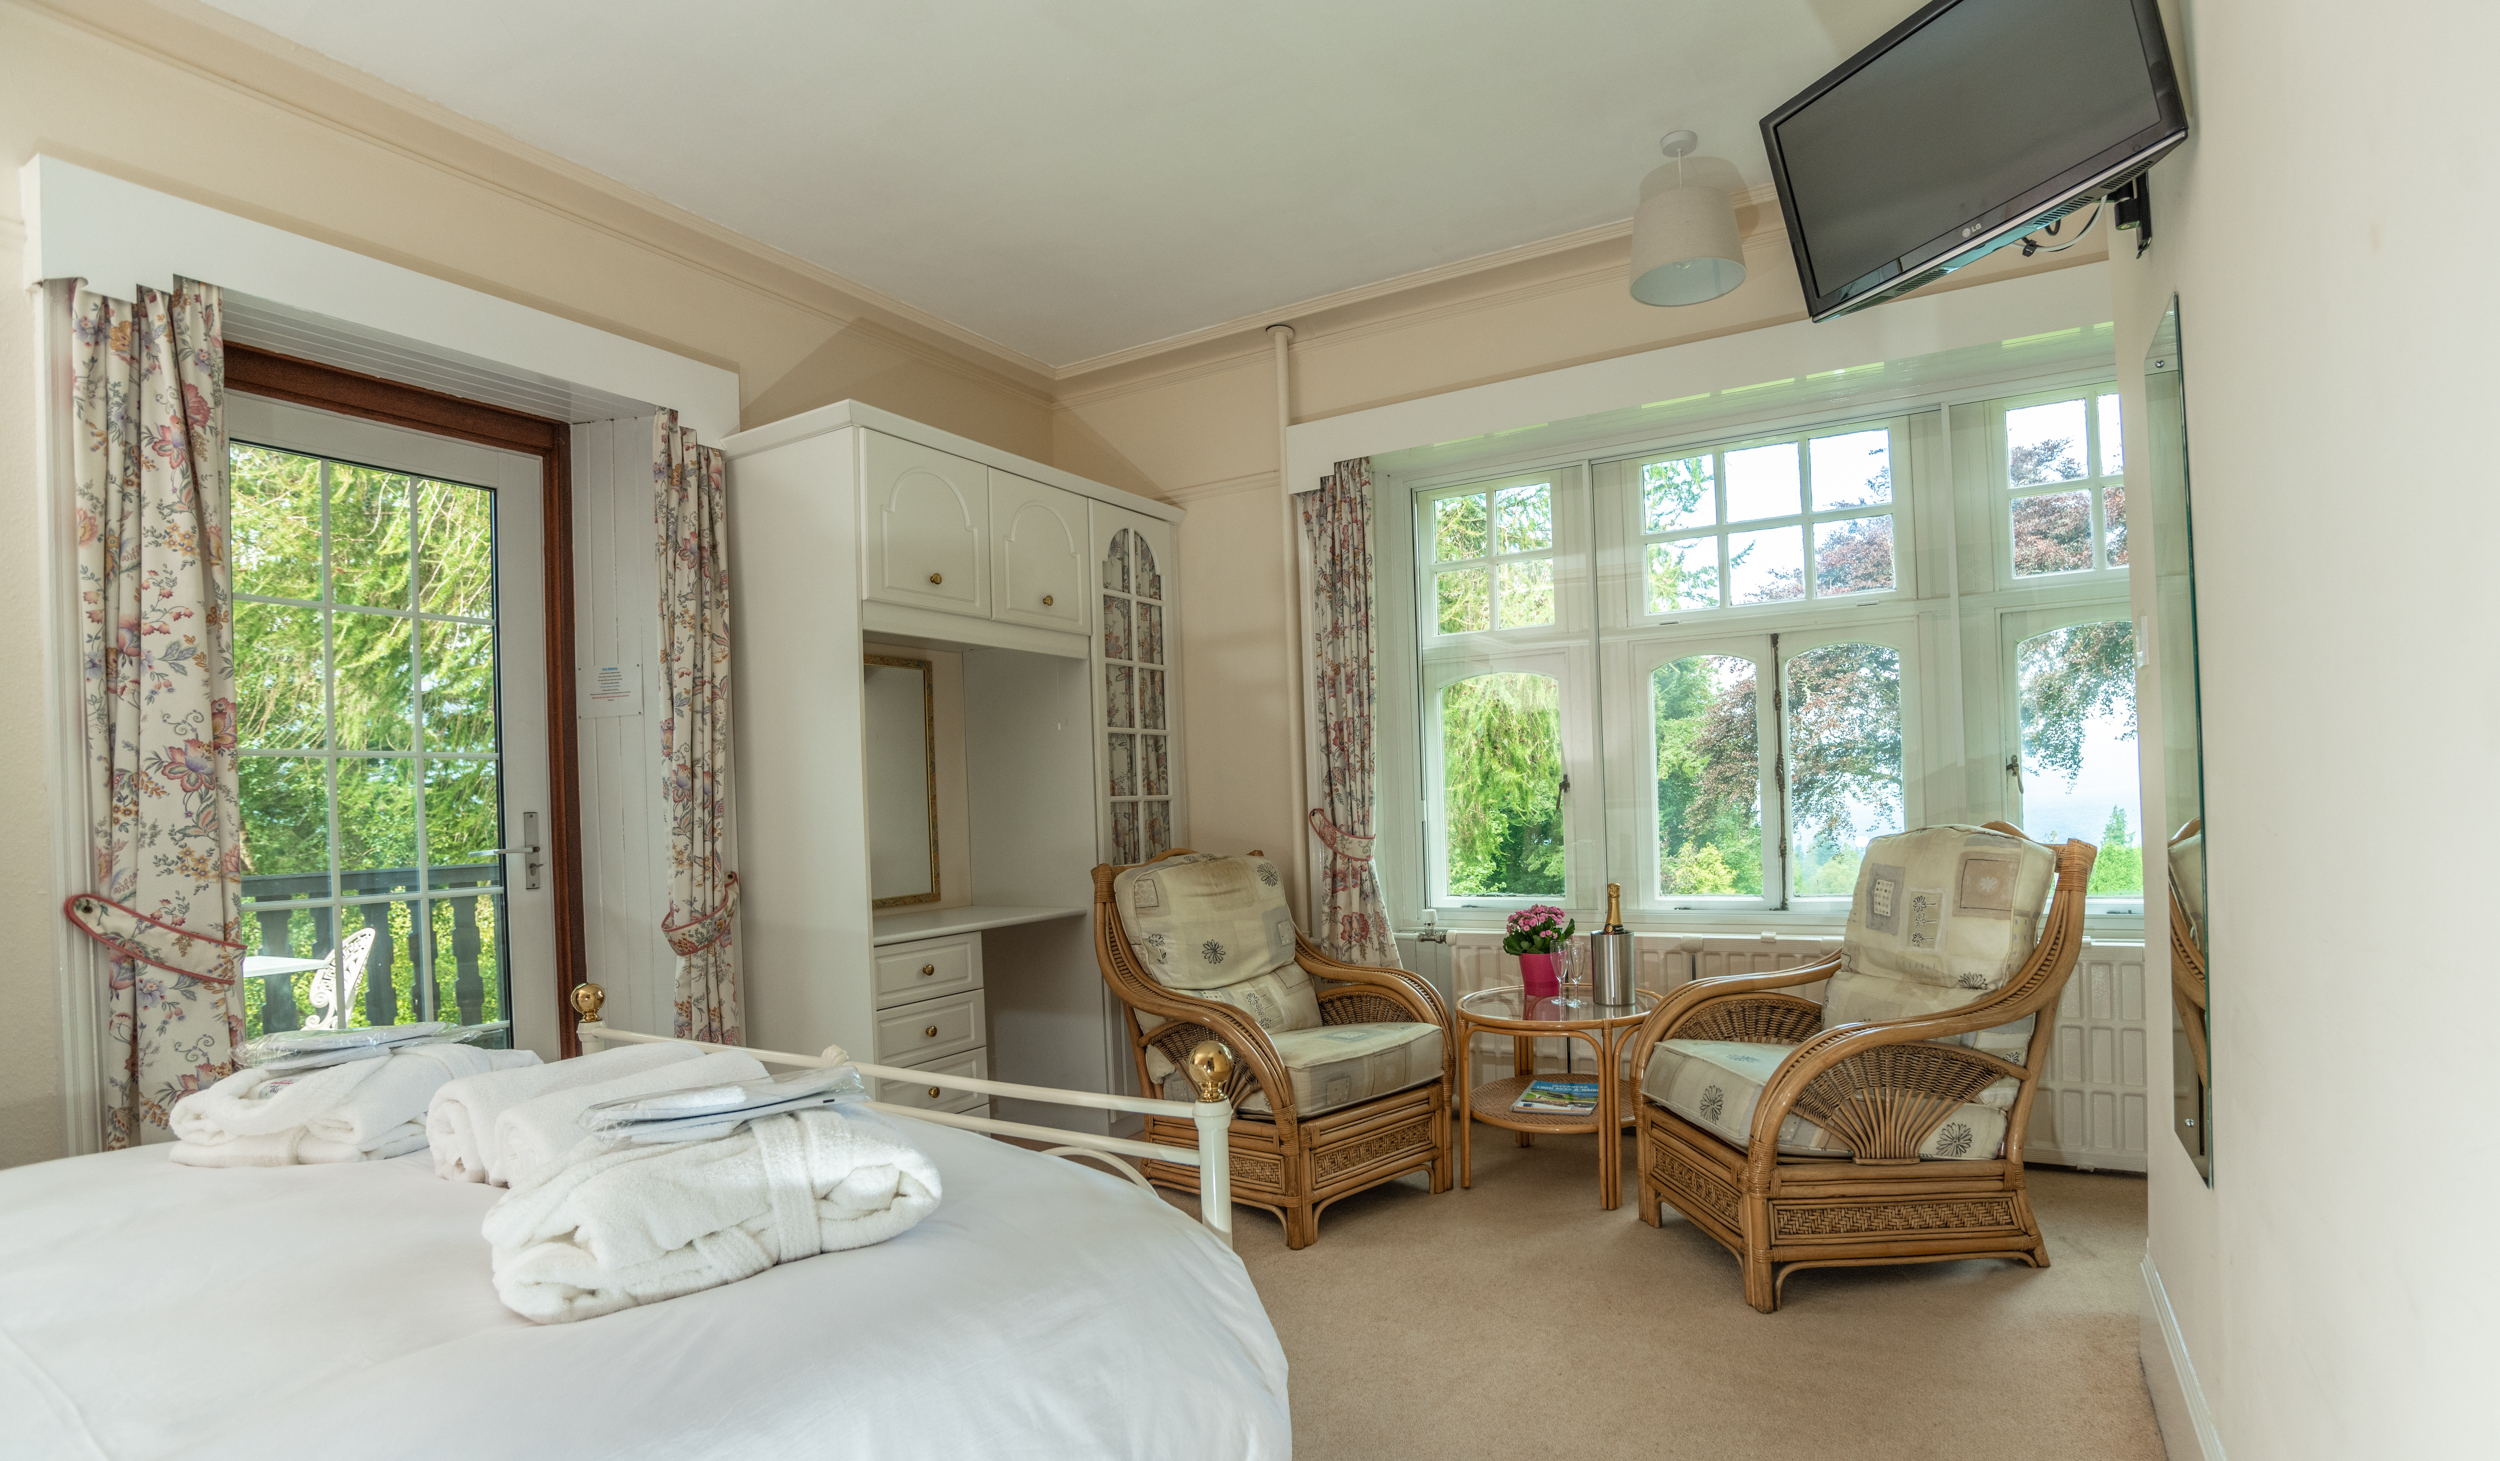 Room 2 - Superior king room with loch views and balcony